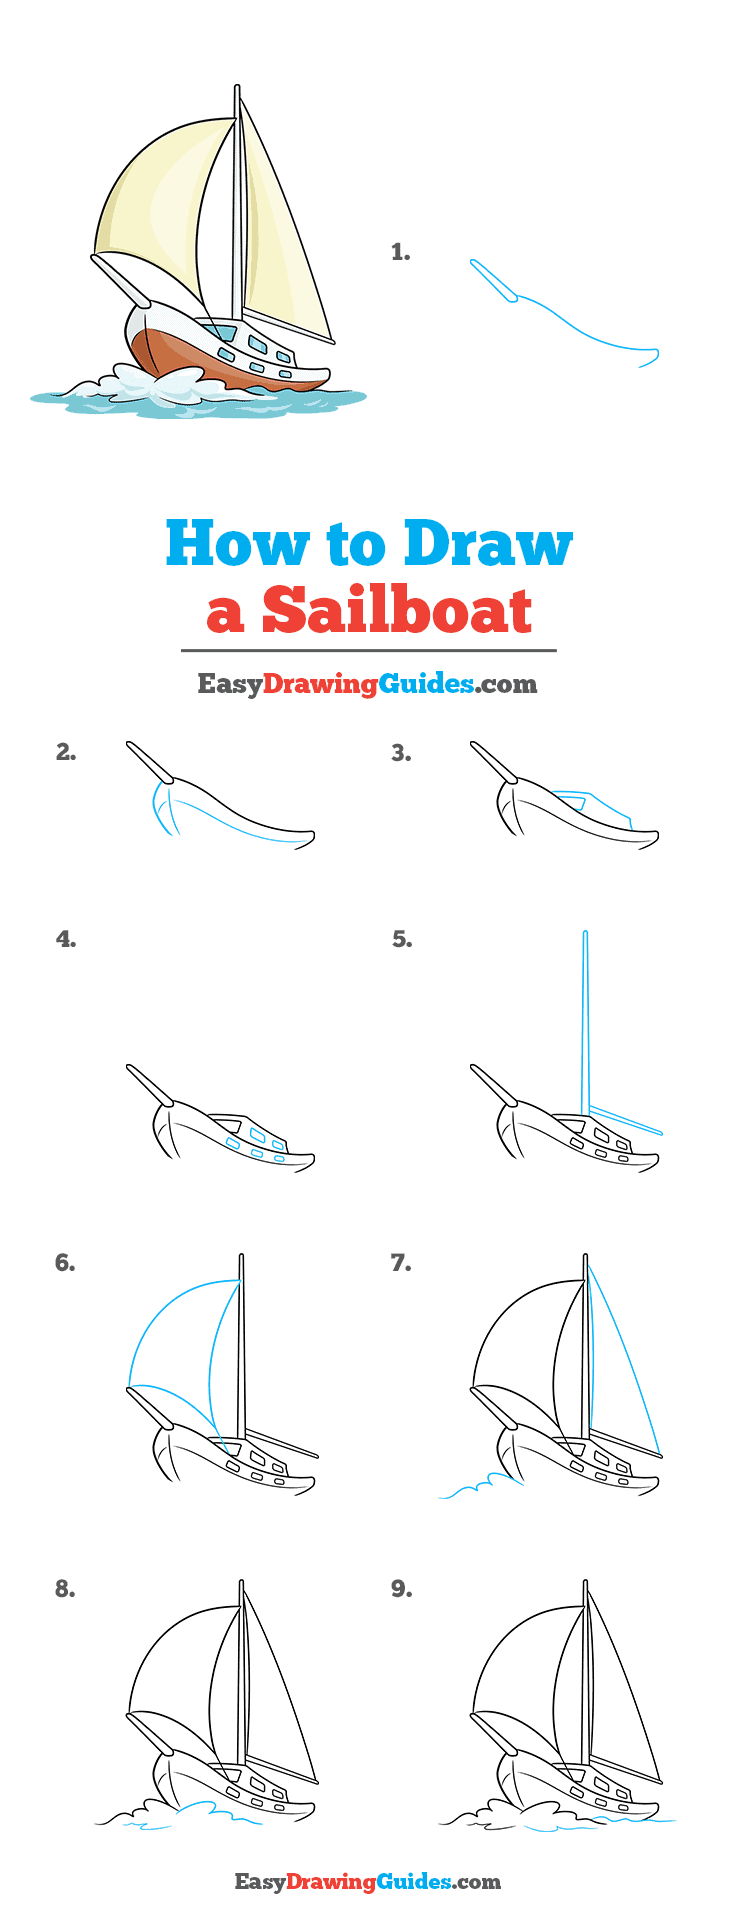 How to Draw Sailboat